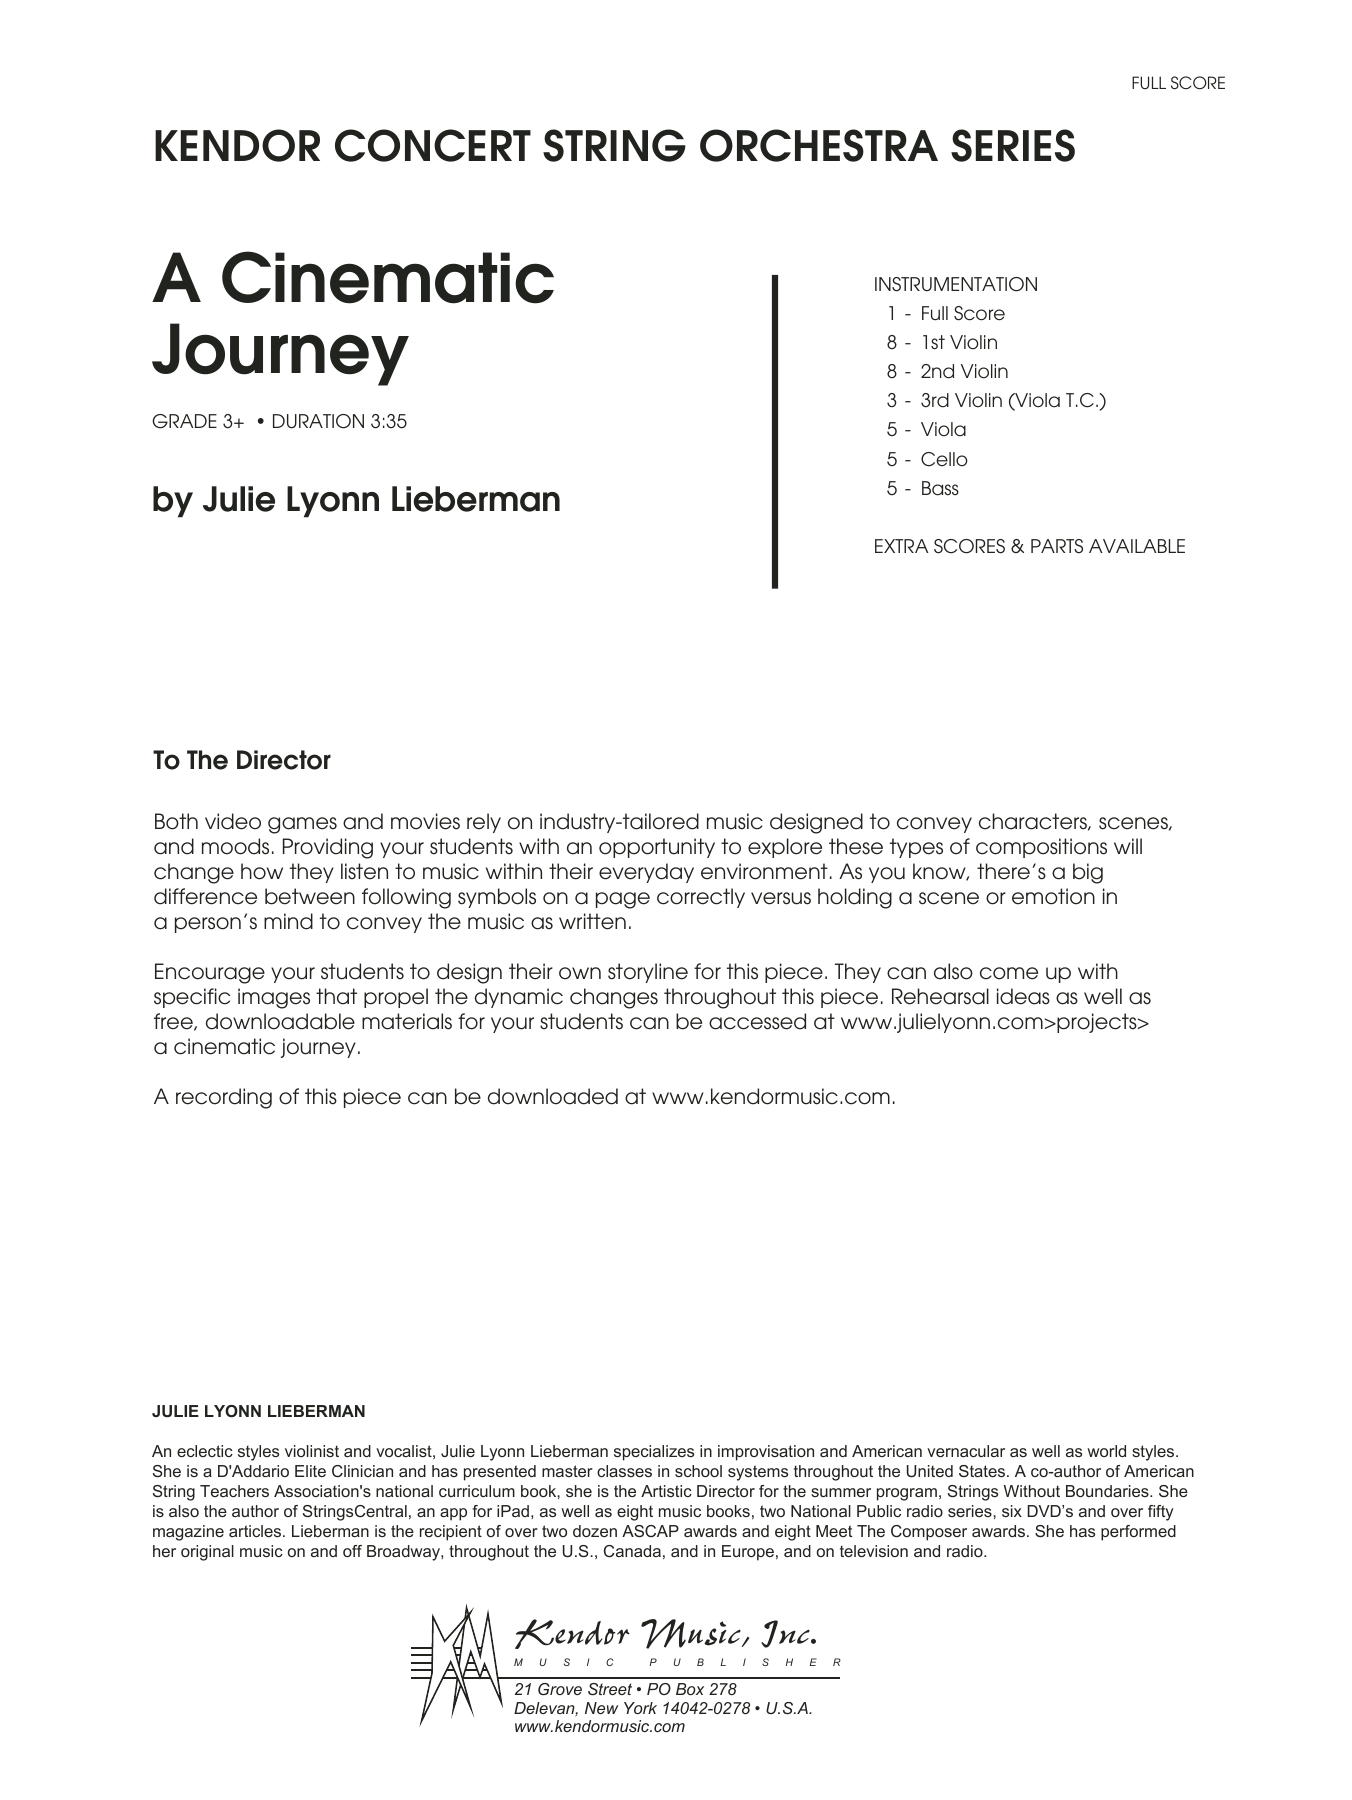 A Cinematic Journey (COMPLETE) sheet music for orchestra by Julie Lyonn Lieberman. Score Image Preview.